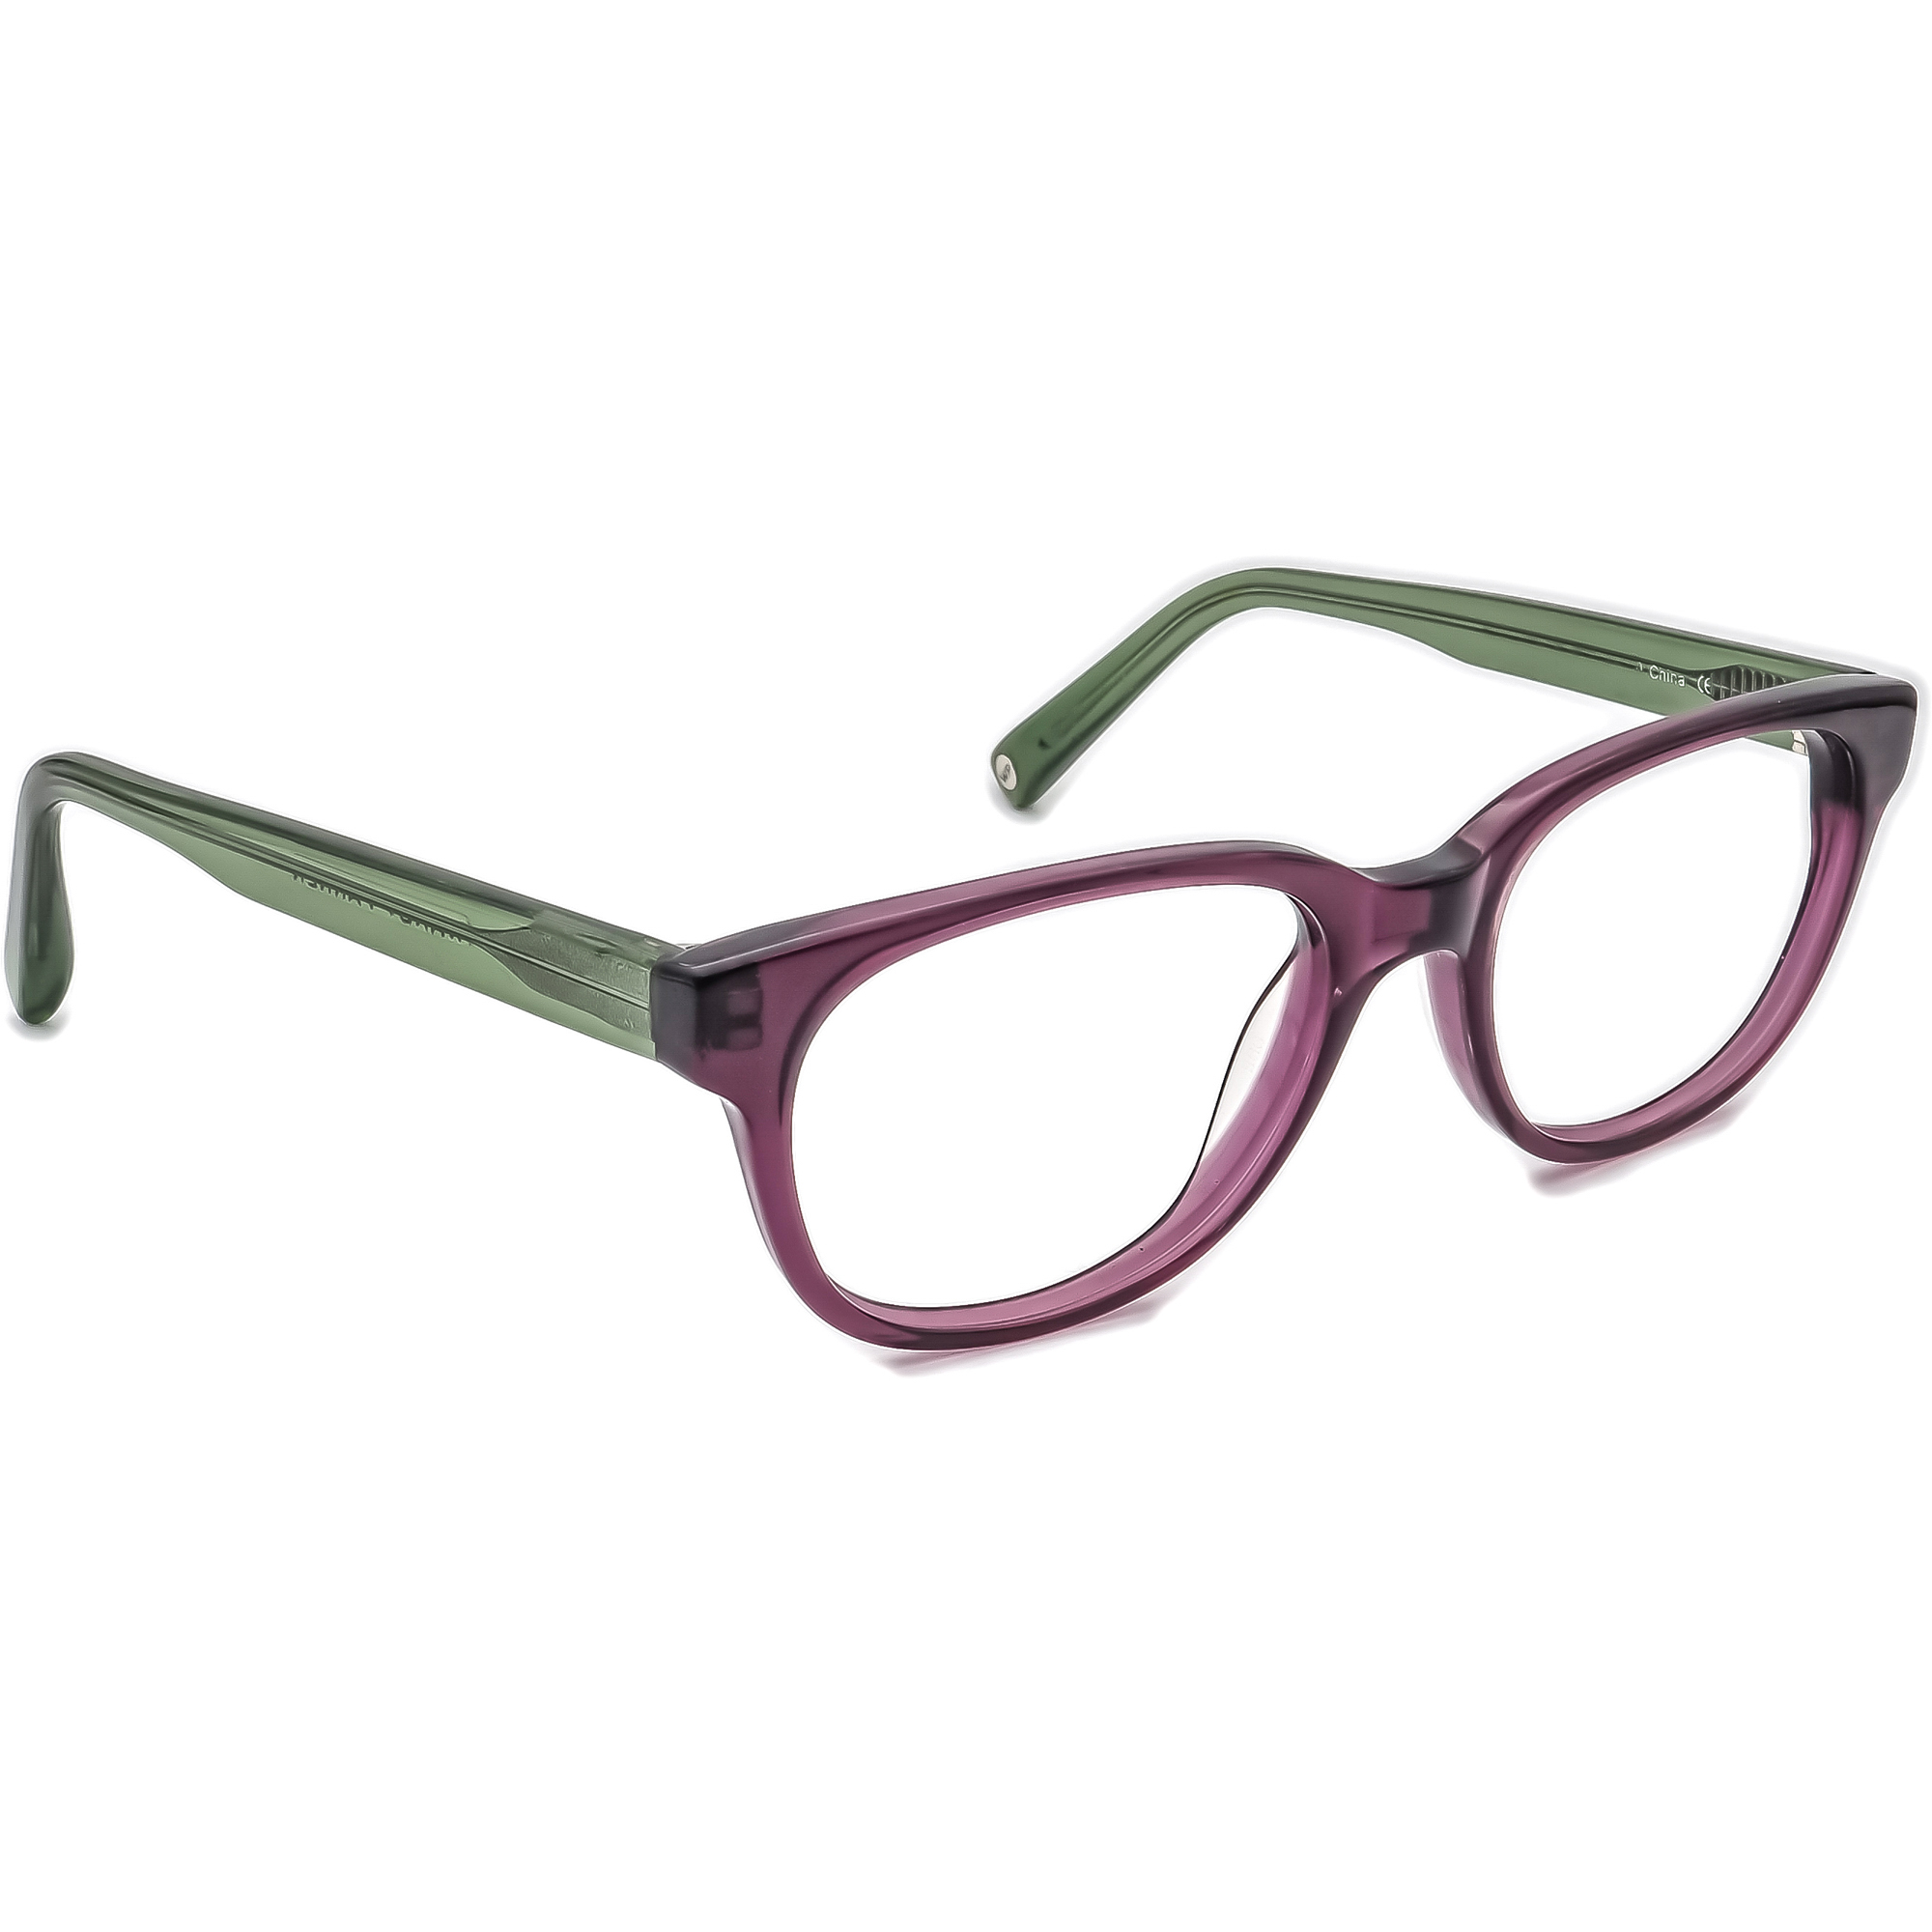 Warby Parker Ainsworth-761 Eyeglasses